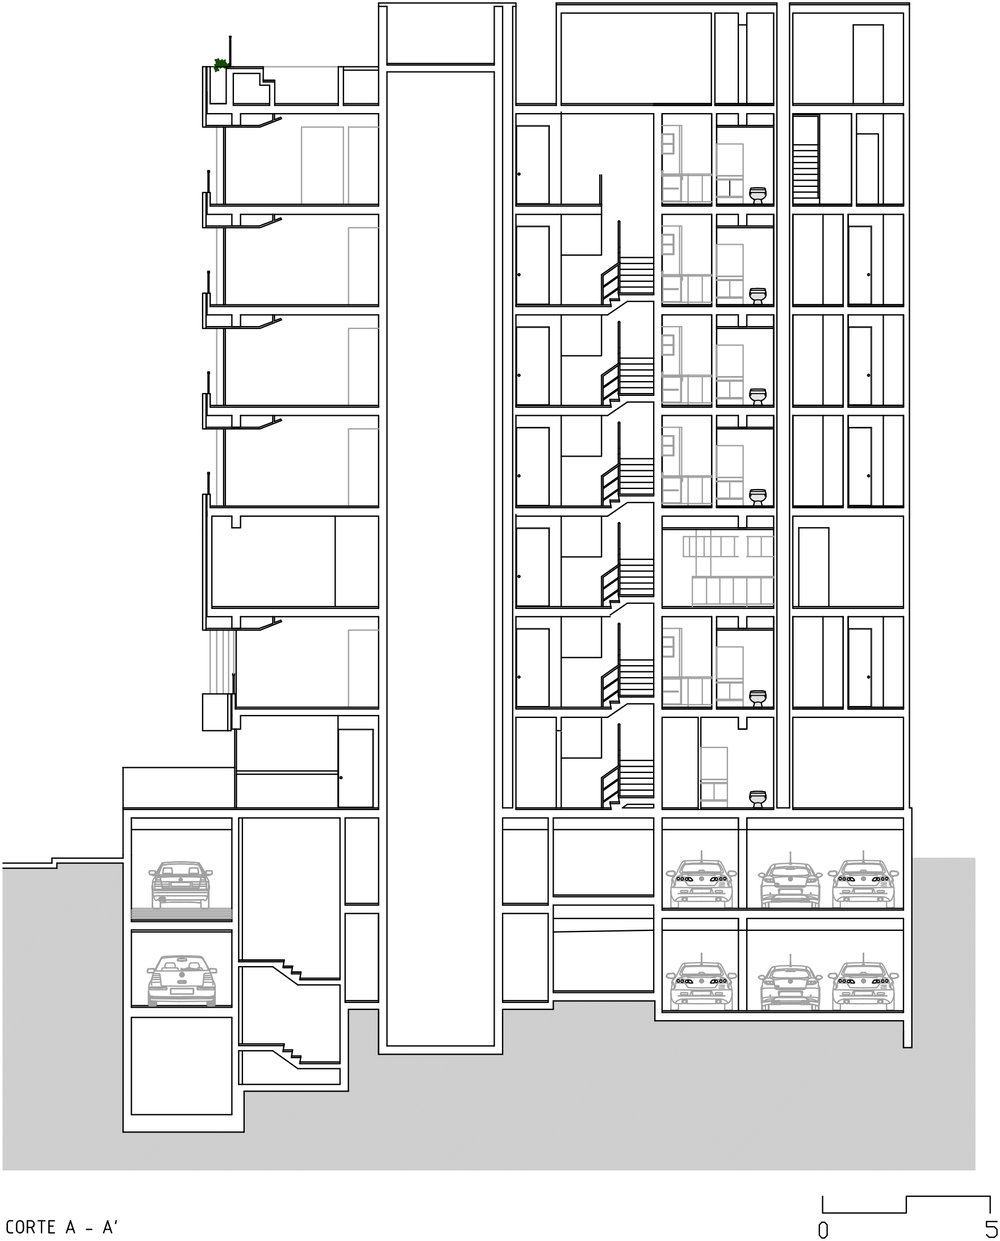 DESSIN-T_005_SECTIONS_A-A_GRAY_200.jpg